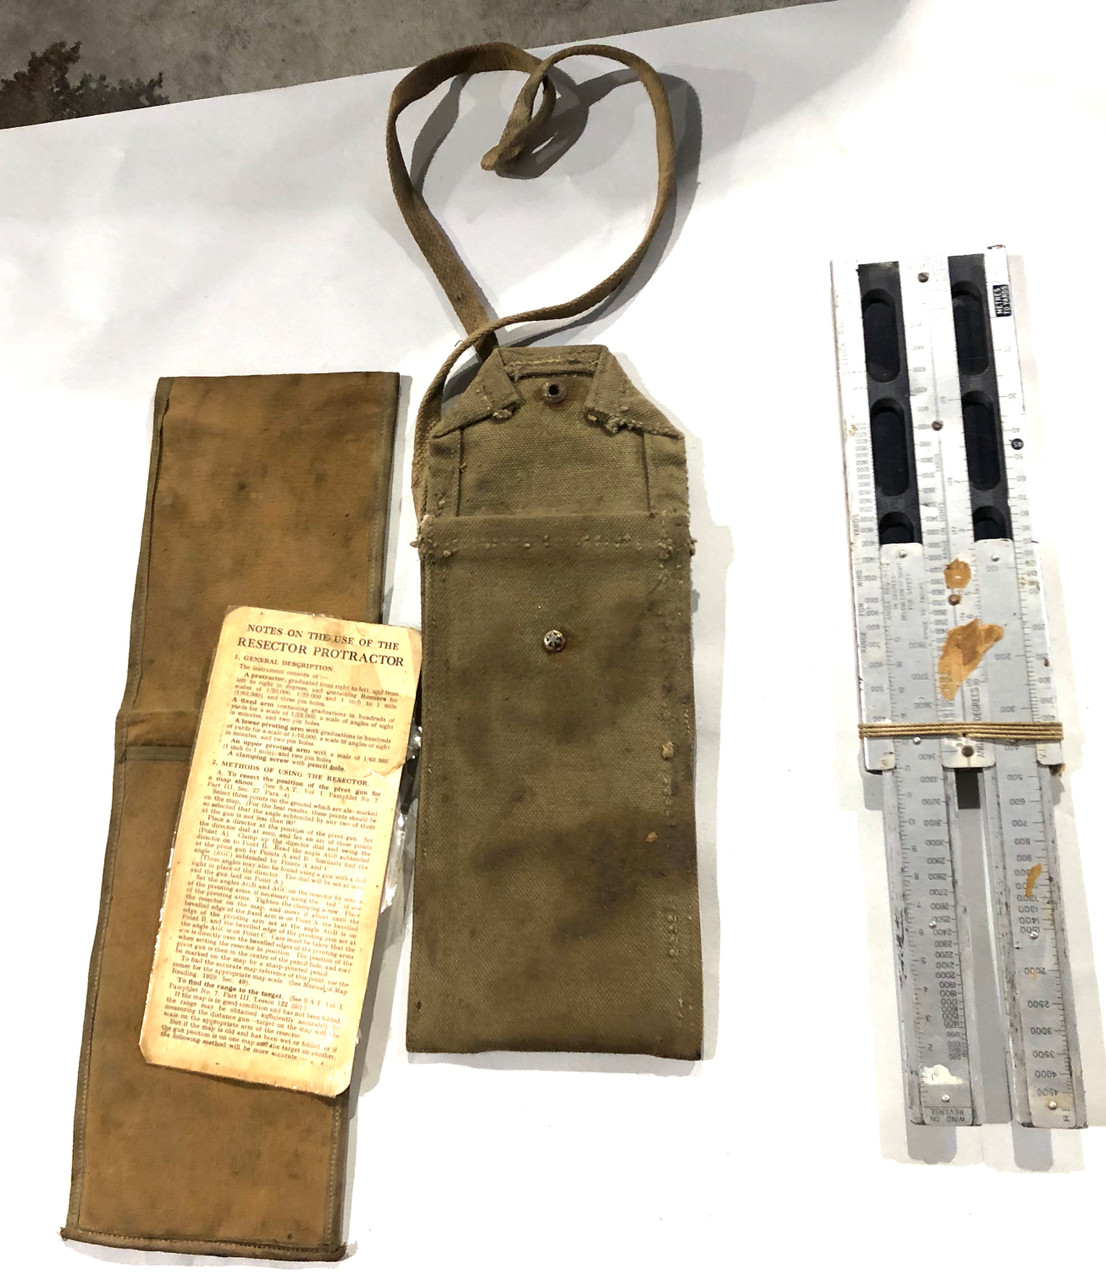 Lot of Vickers Slide Rule Scale with Case and Protractor Case